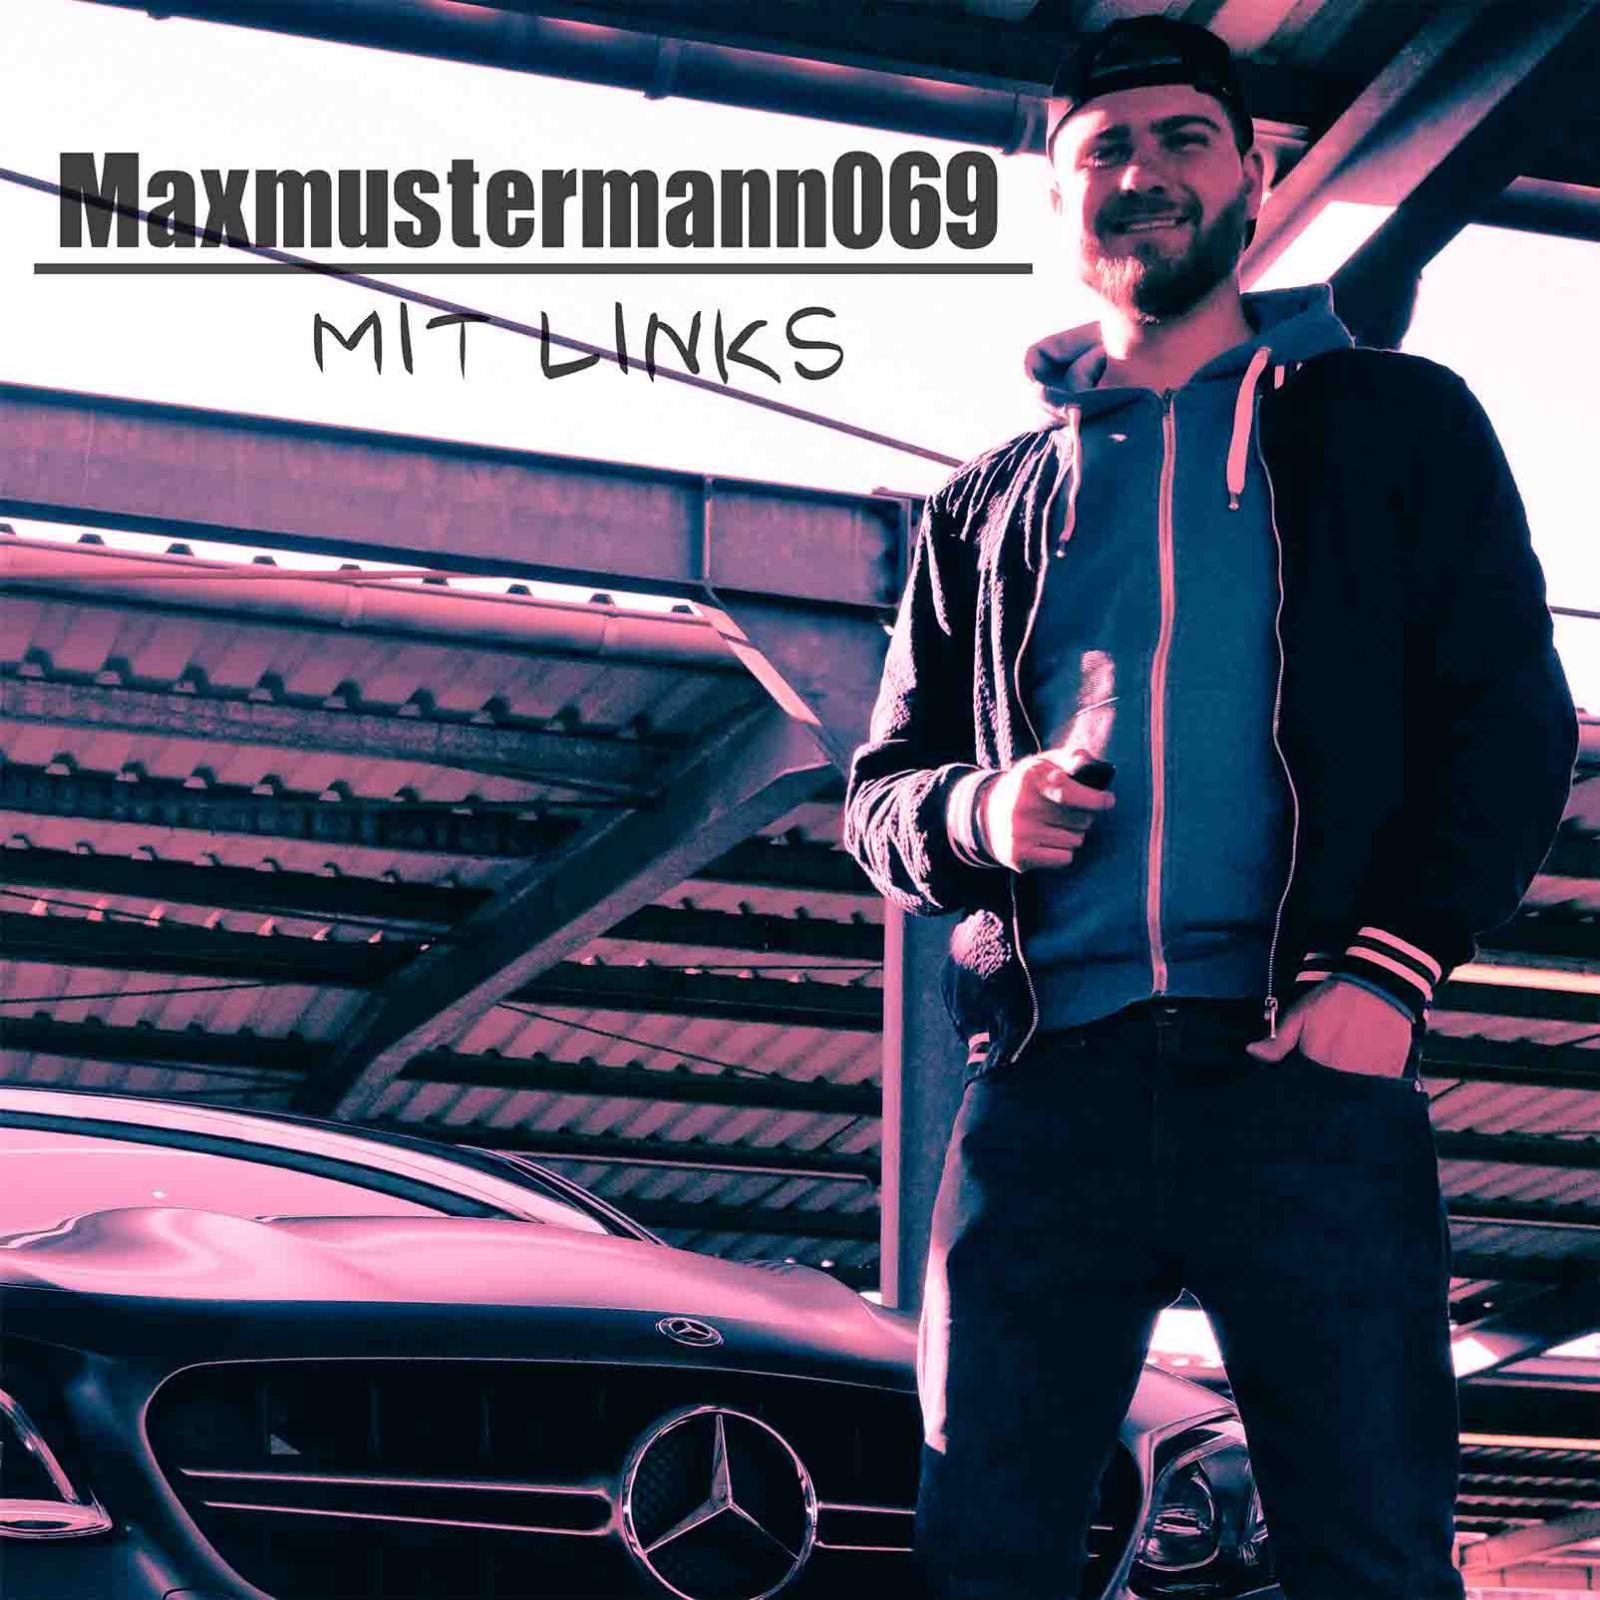 Upcoming: Maxmustermann069 - Mit Links